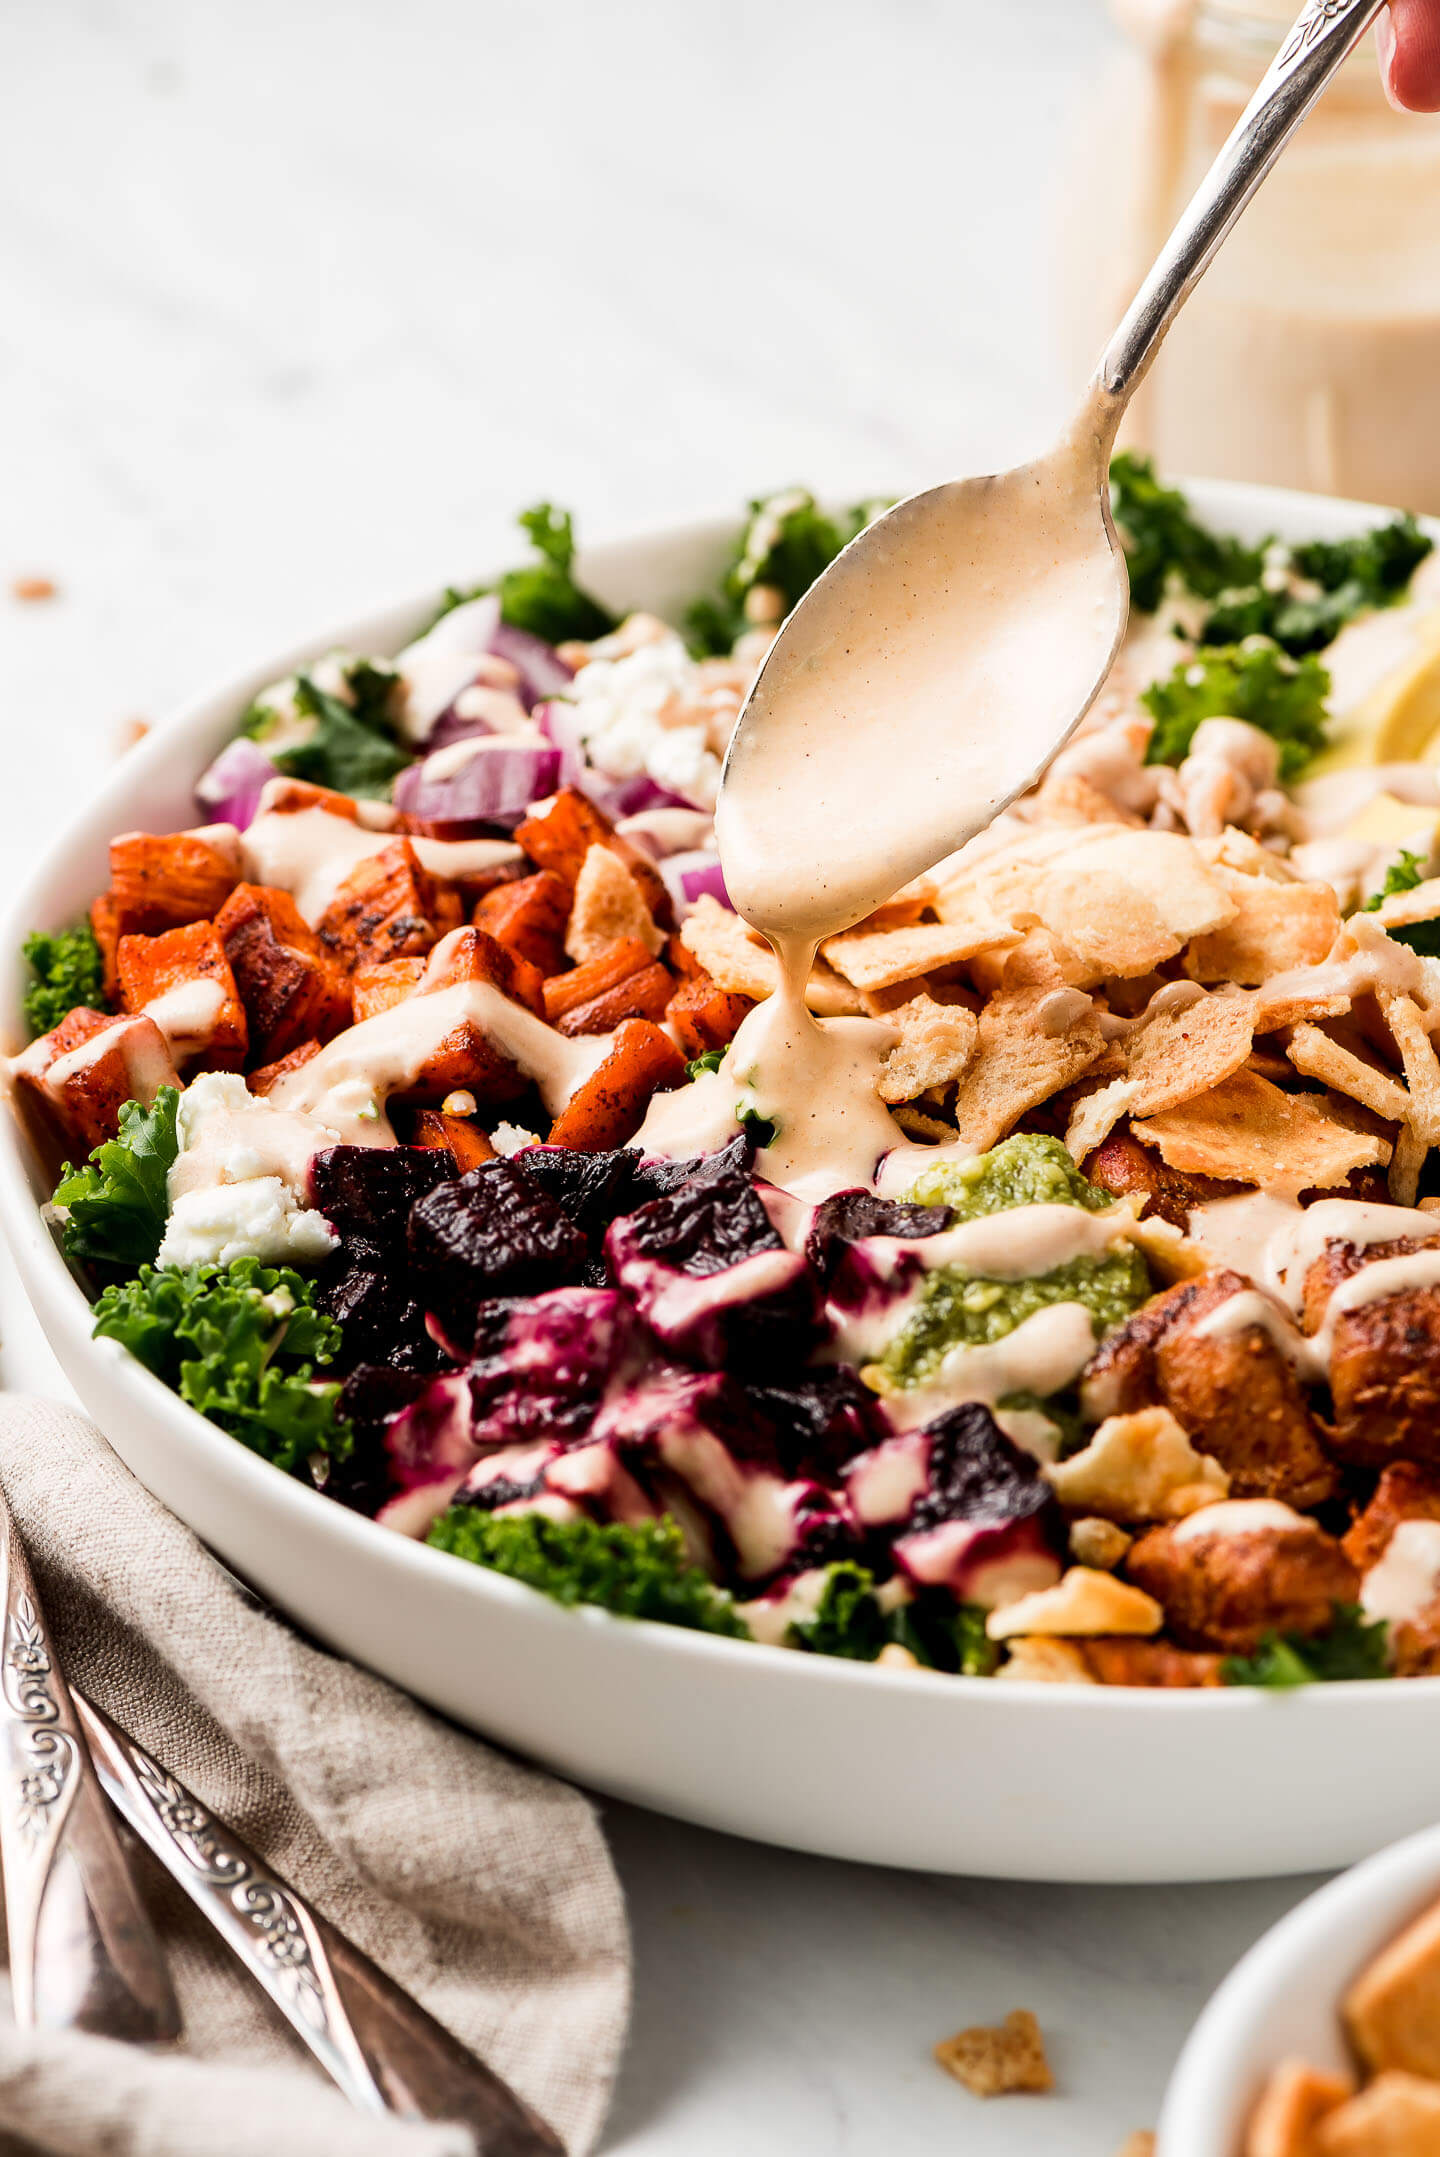 Spooning tahini dressing over a kale salad.